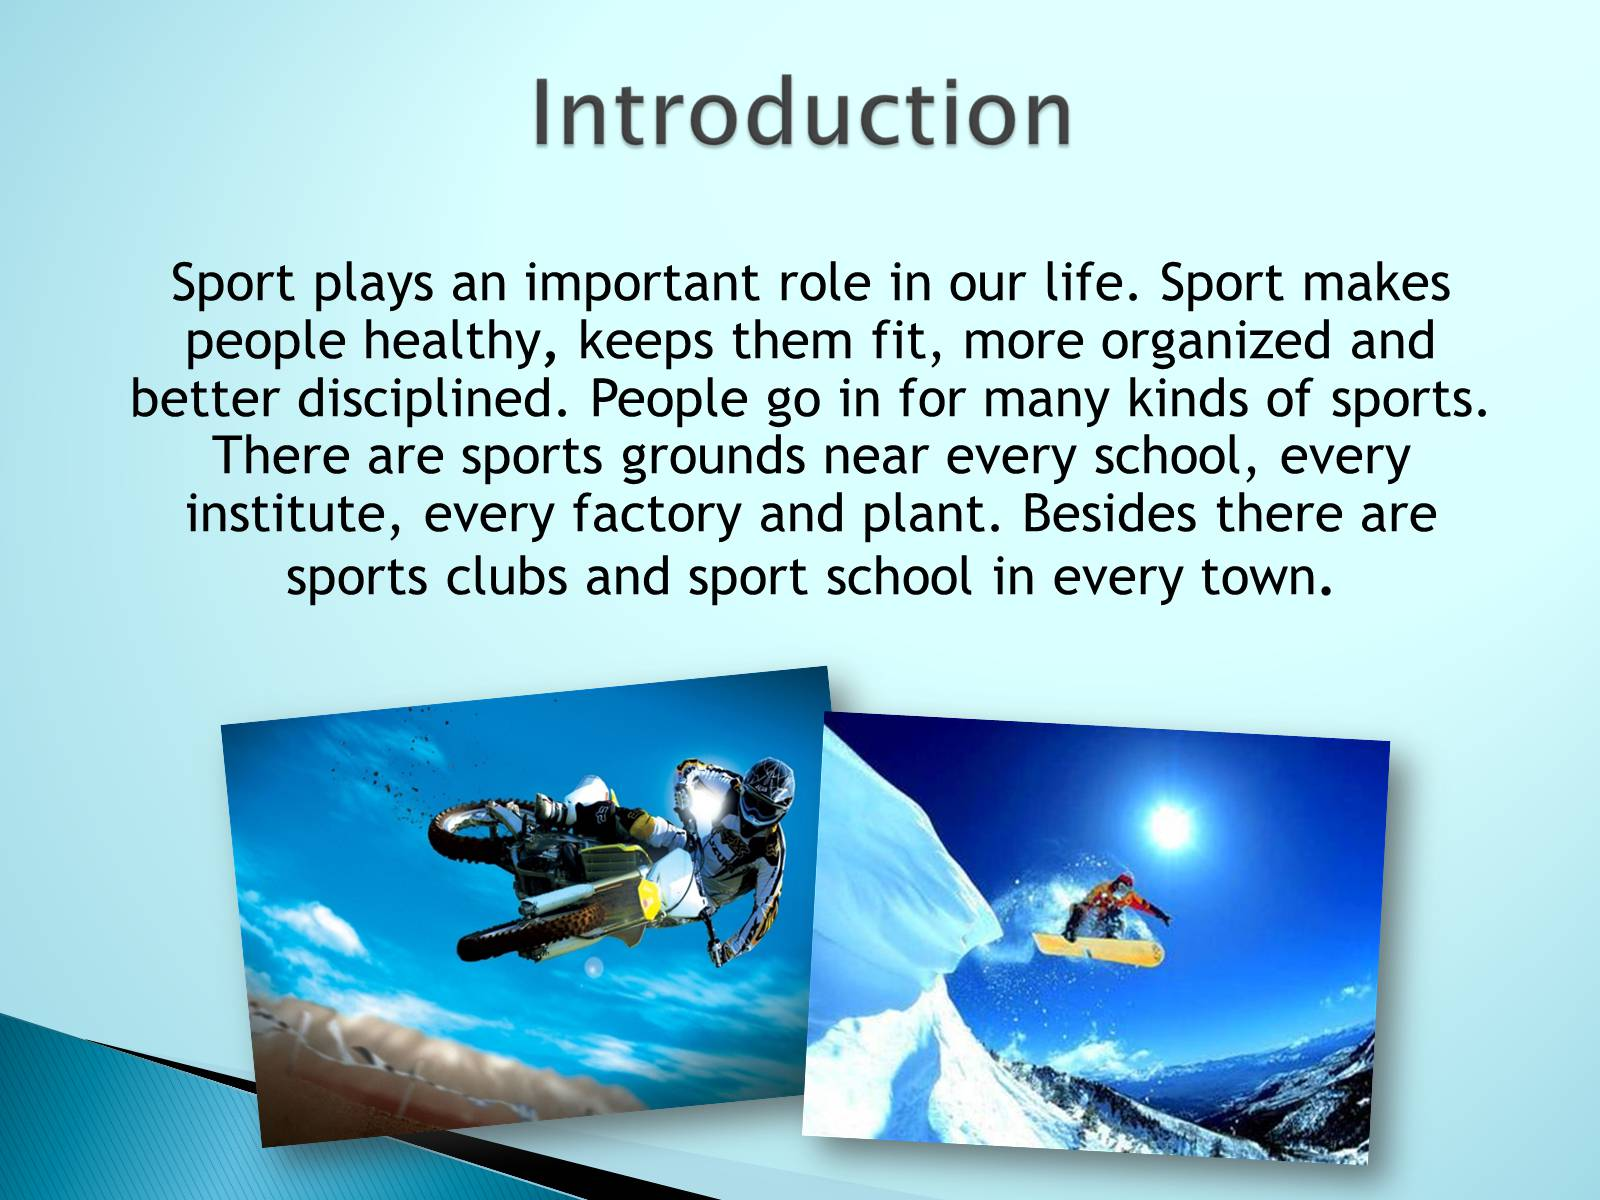 essay on importance of sports and games in life There are several other considerations which entail sports to an important place in life it is usually by taking part in sports that we cultivate what is called the spirit of showmanship this spirit of sportsmanship is an excellent quality in a man and consists of fair play, sense of discipline, capacity for team work and cooperation and.